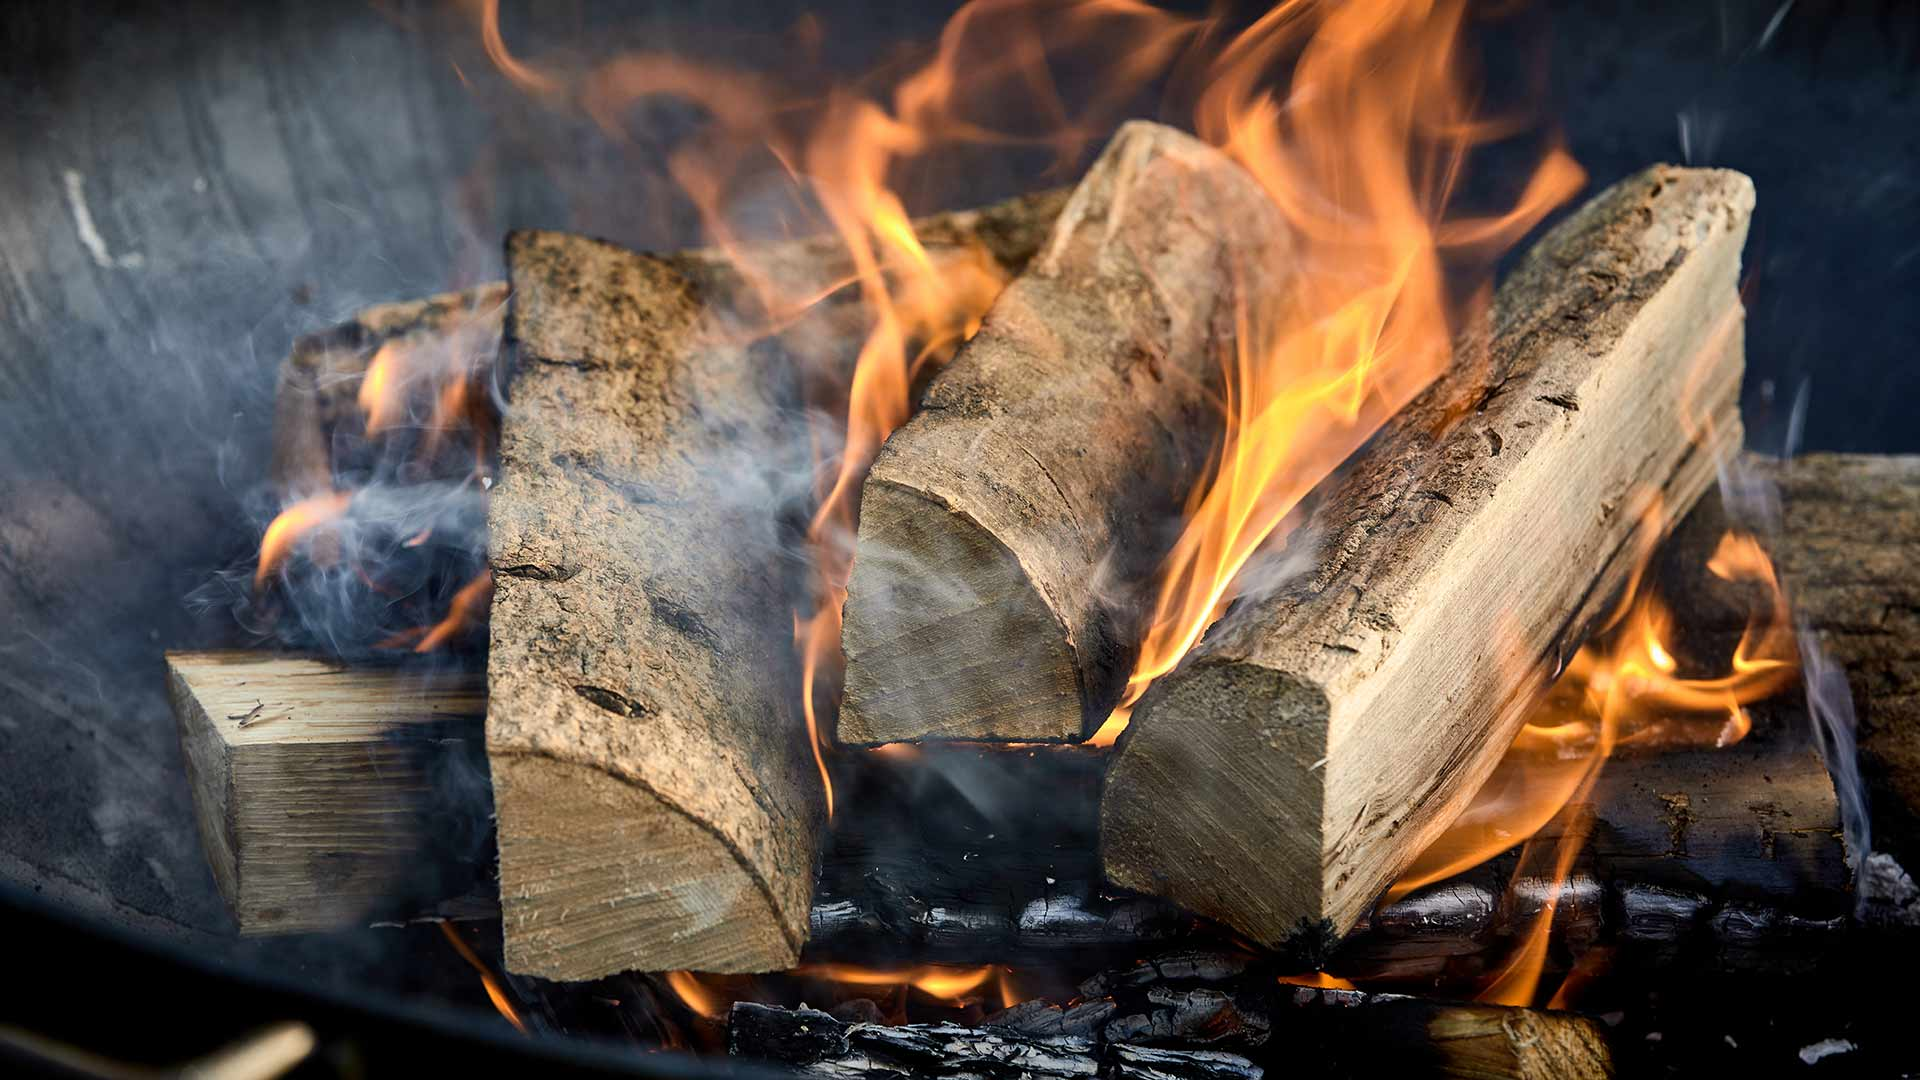 Logs burning in a fireplace